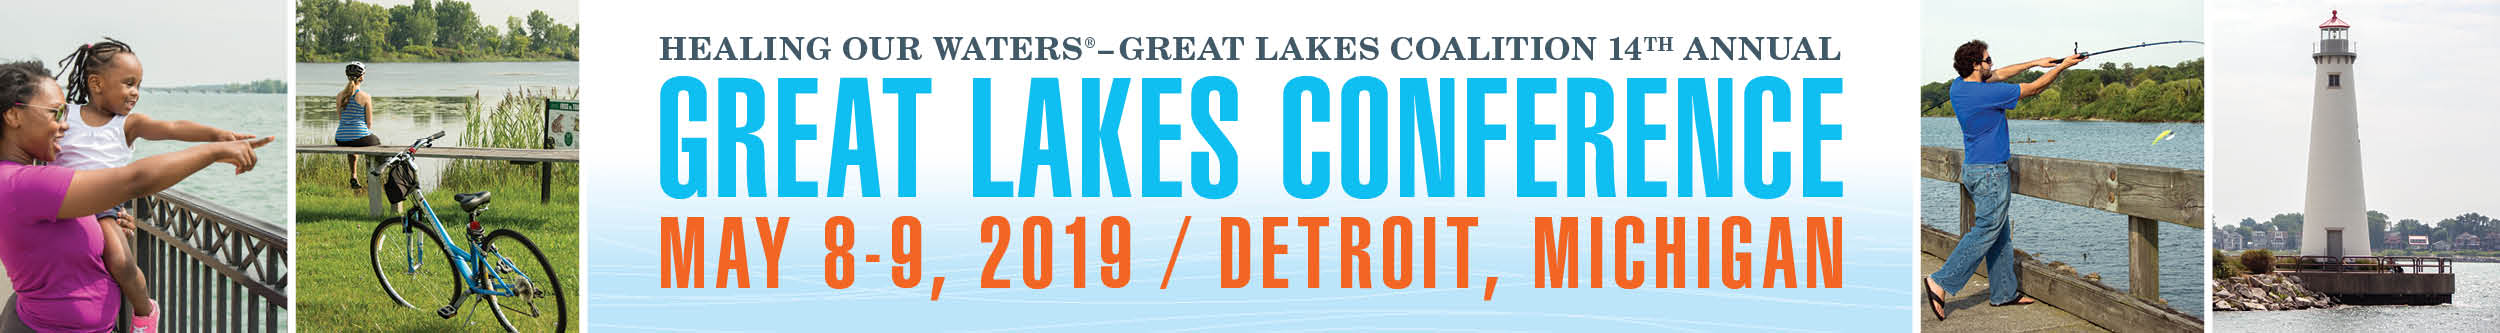 Healing Our Waters 14th Annual Great Lakes Conference